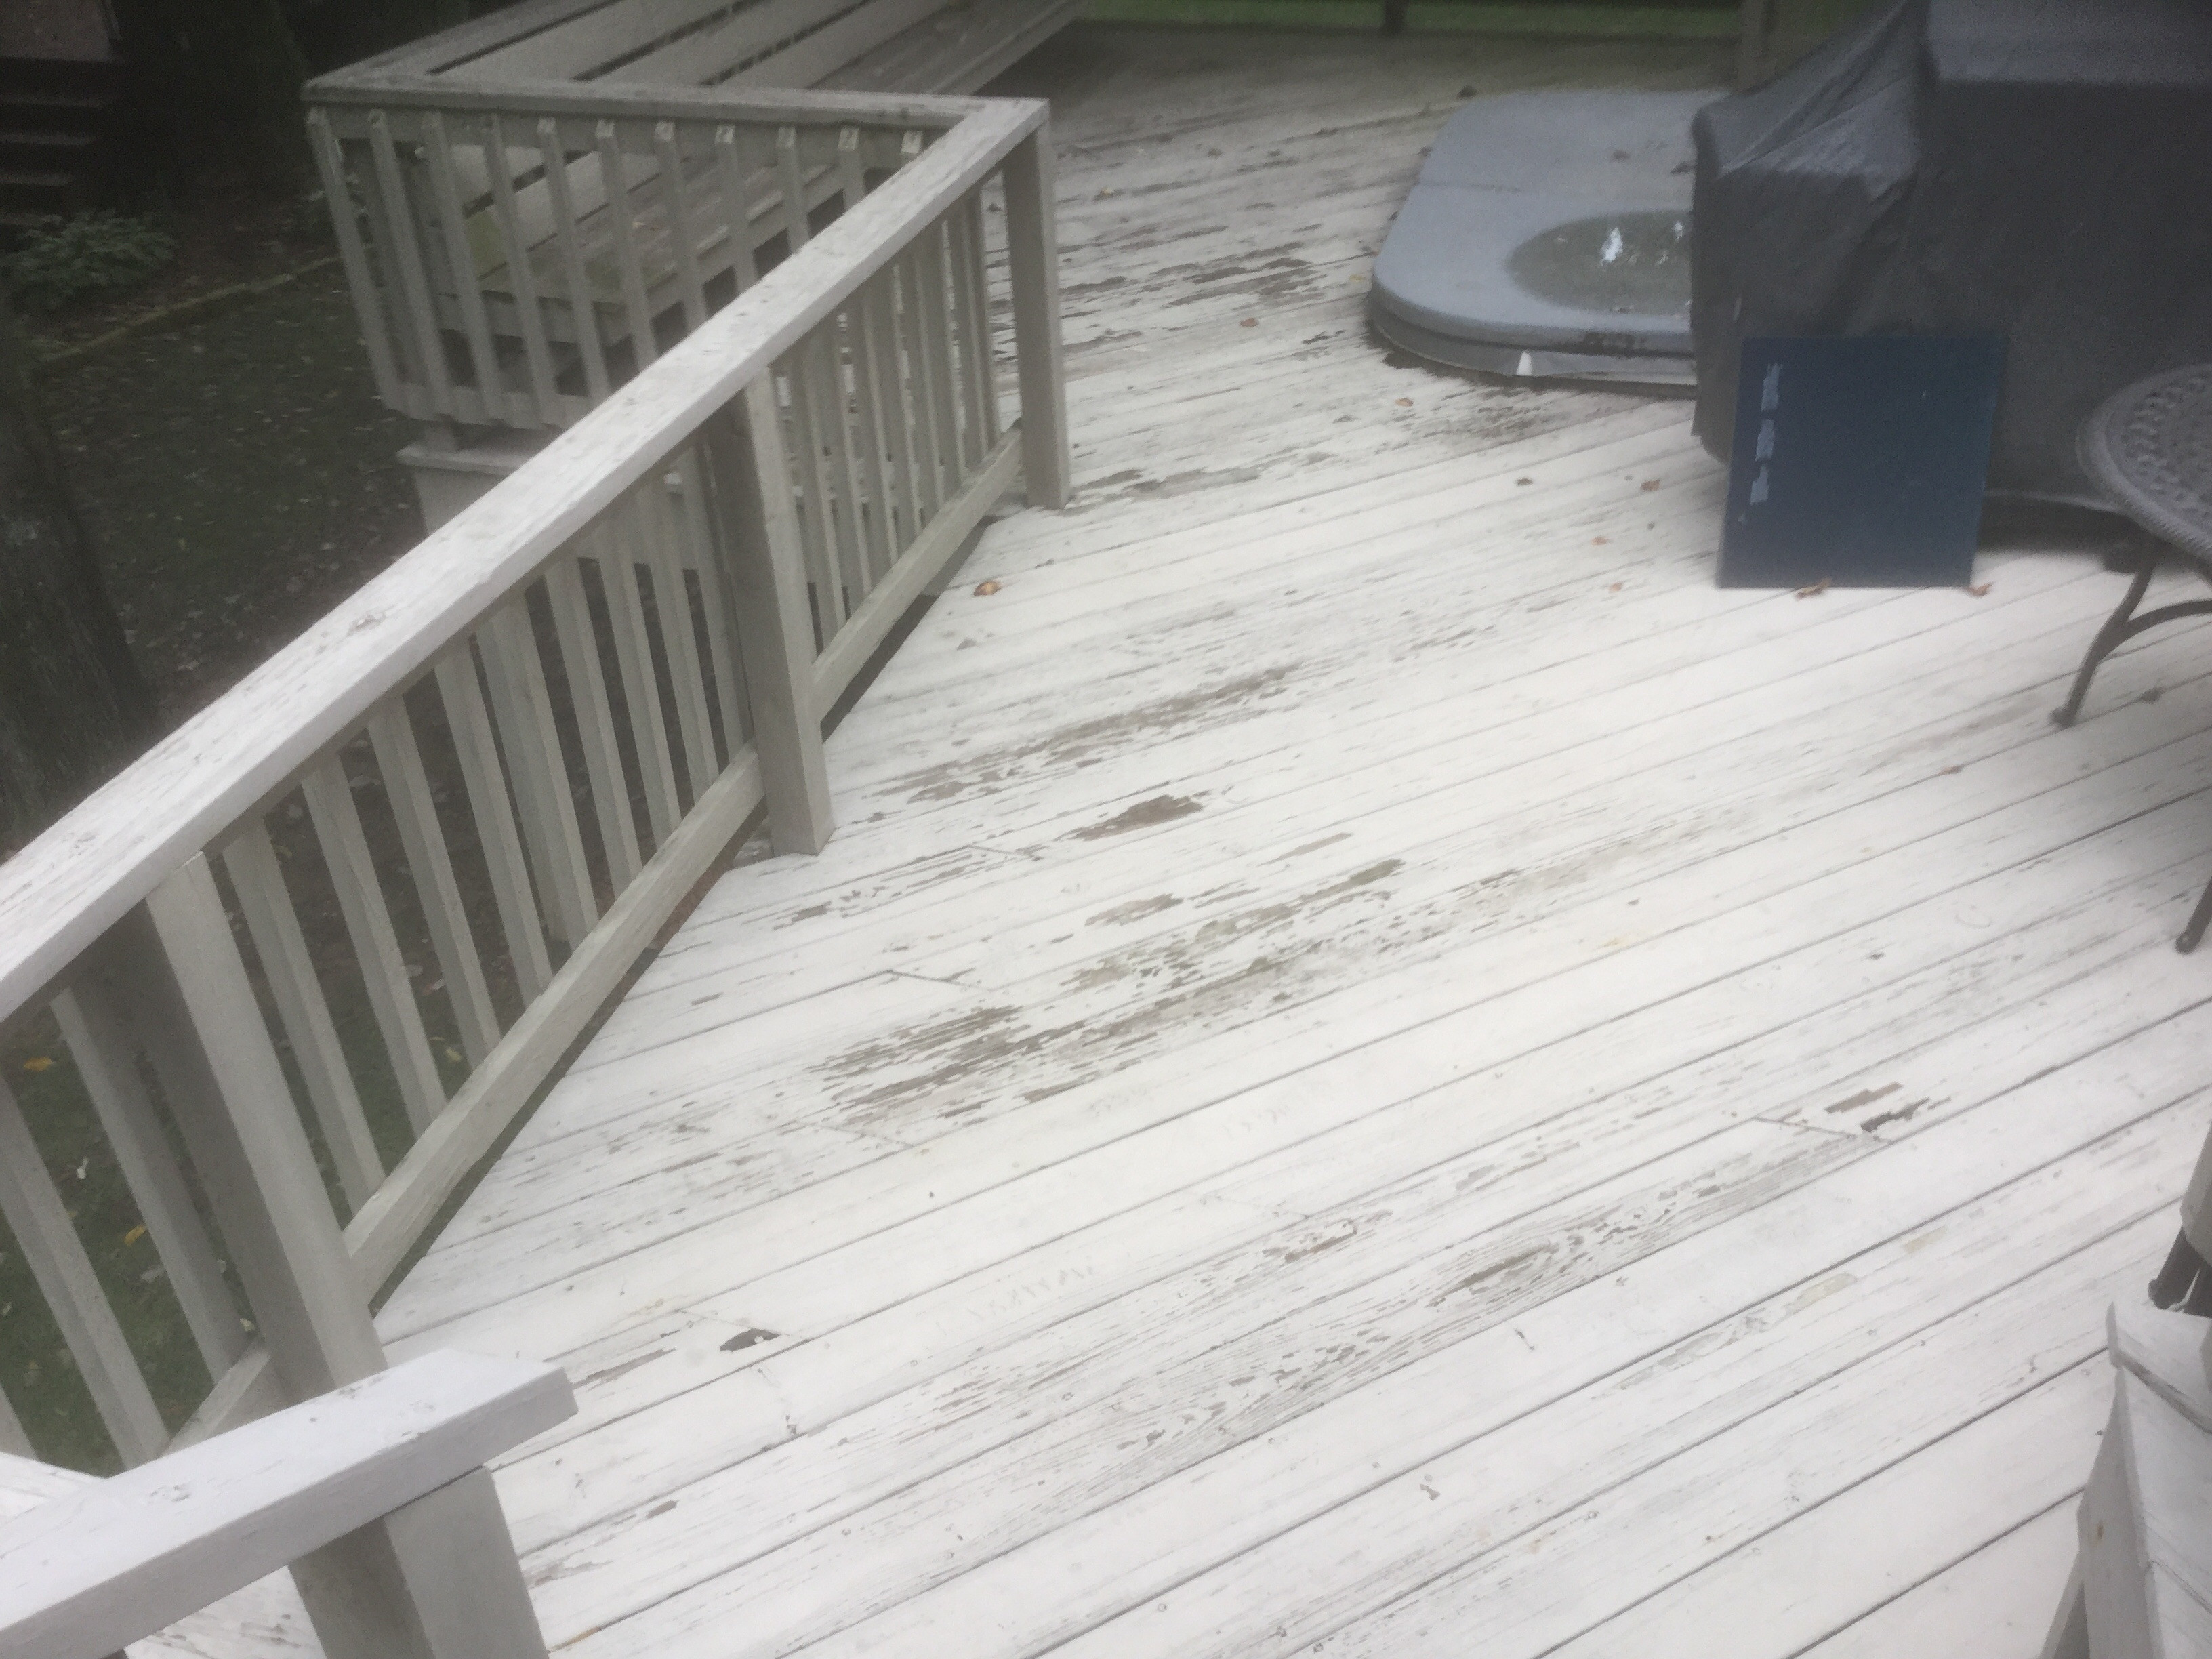 hardwood floor repair milwaukee of class action lawsuit against olympic rescue it best deck stain throughout image